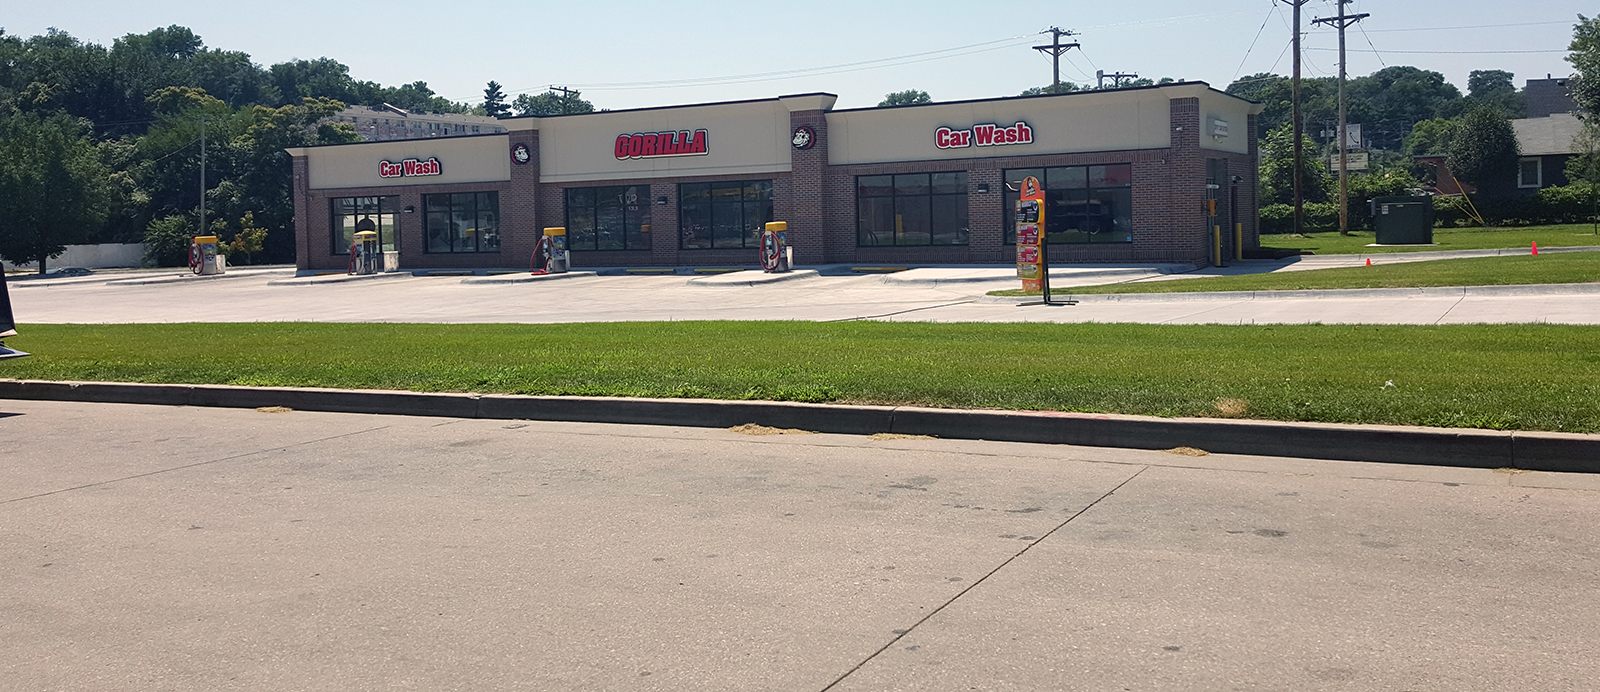 Gorilla car wash car wash omaha gorilla car wash solutioingenieria Image collections